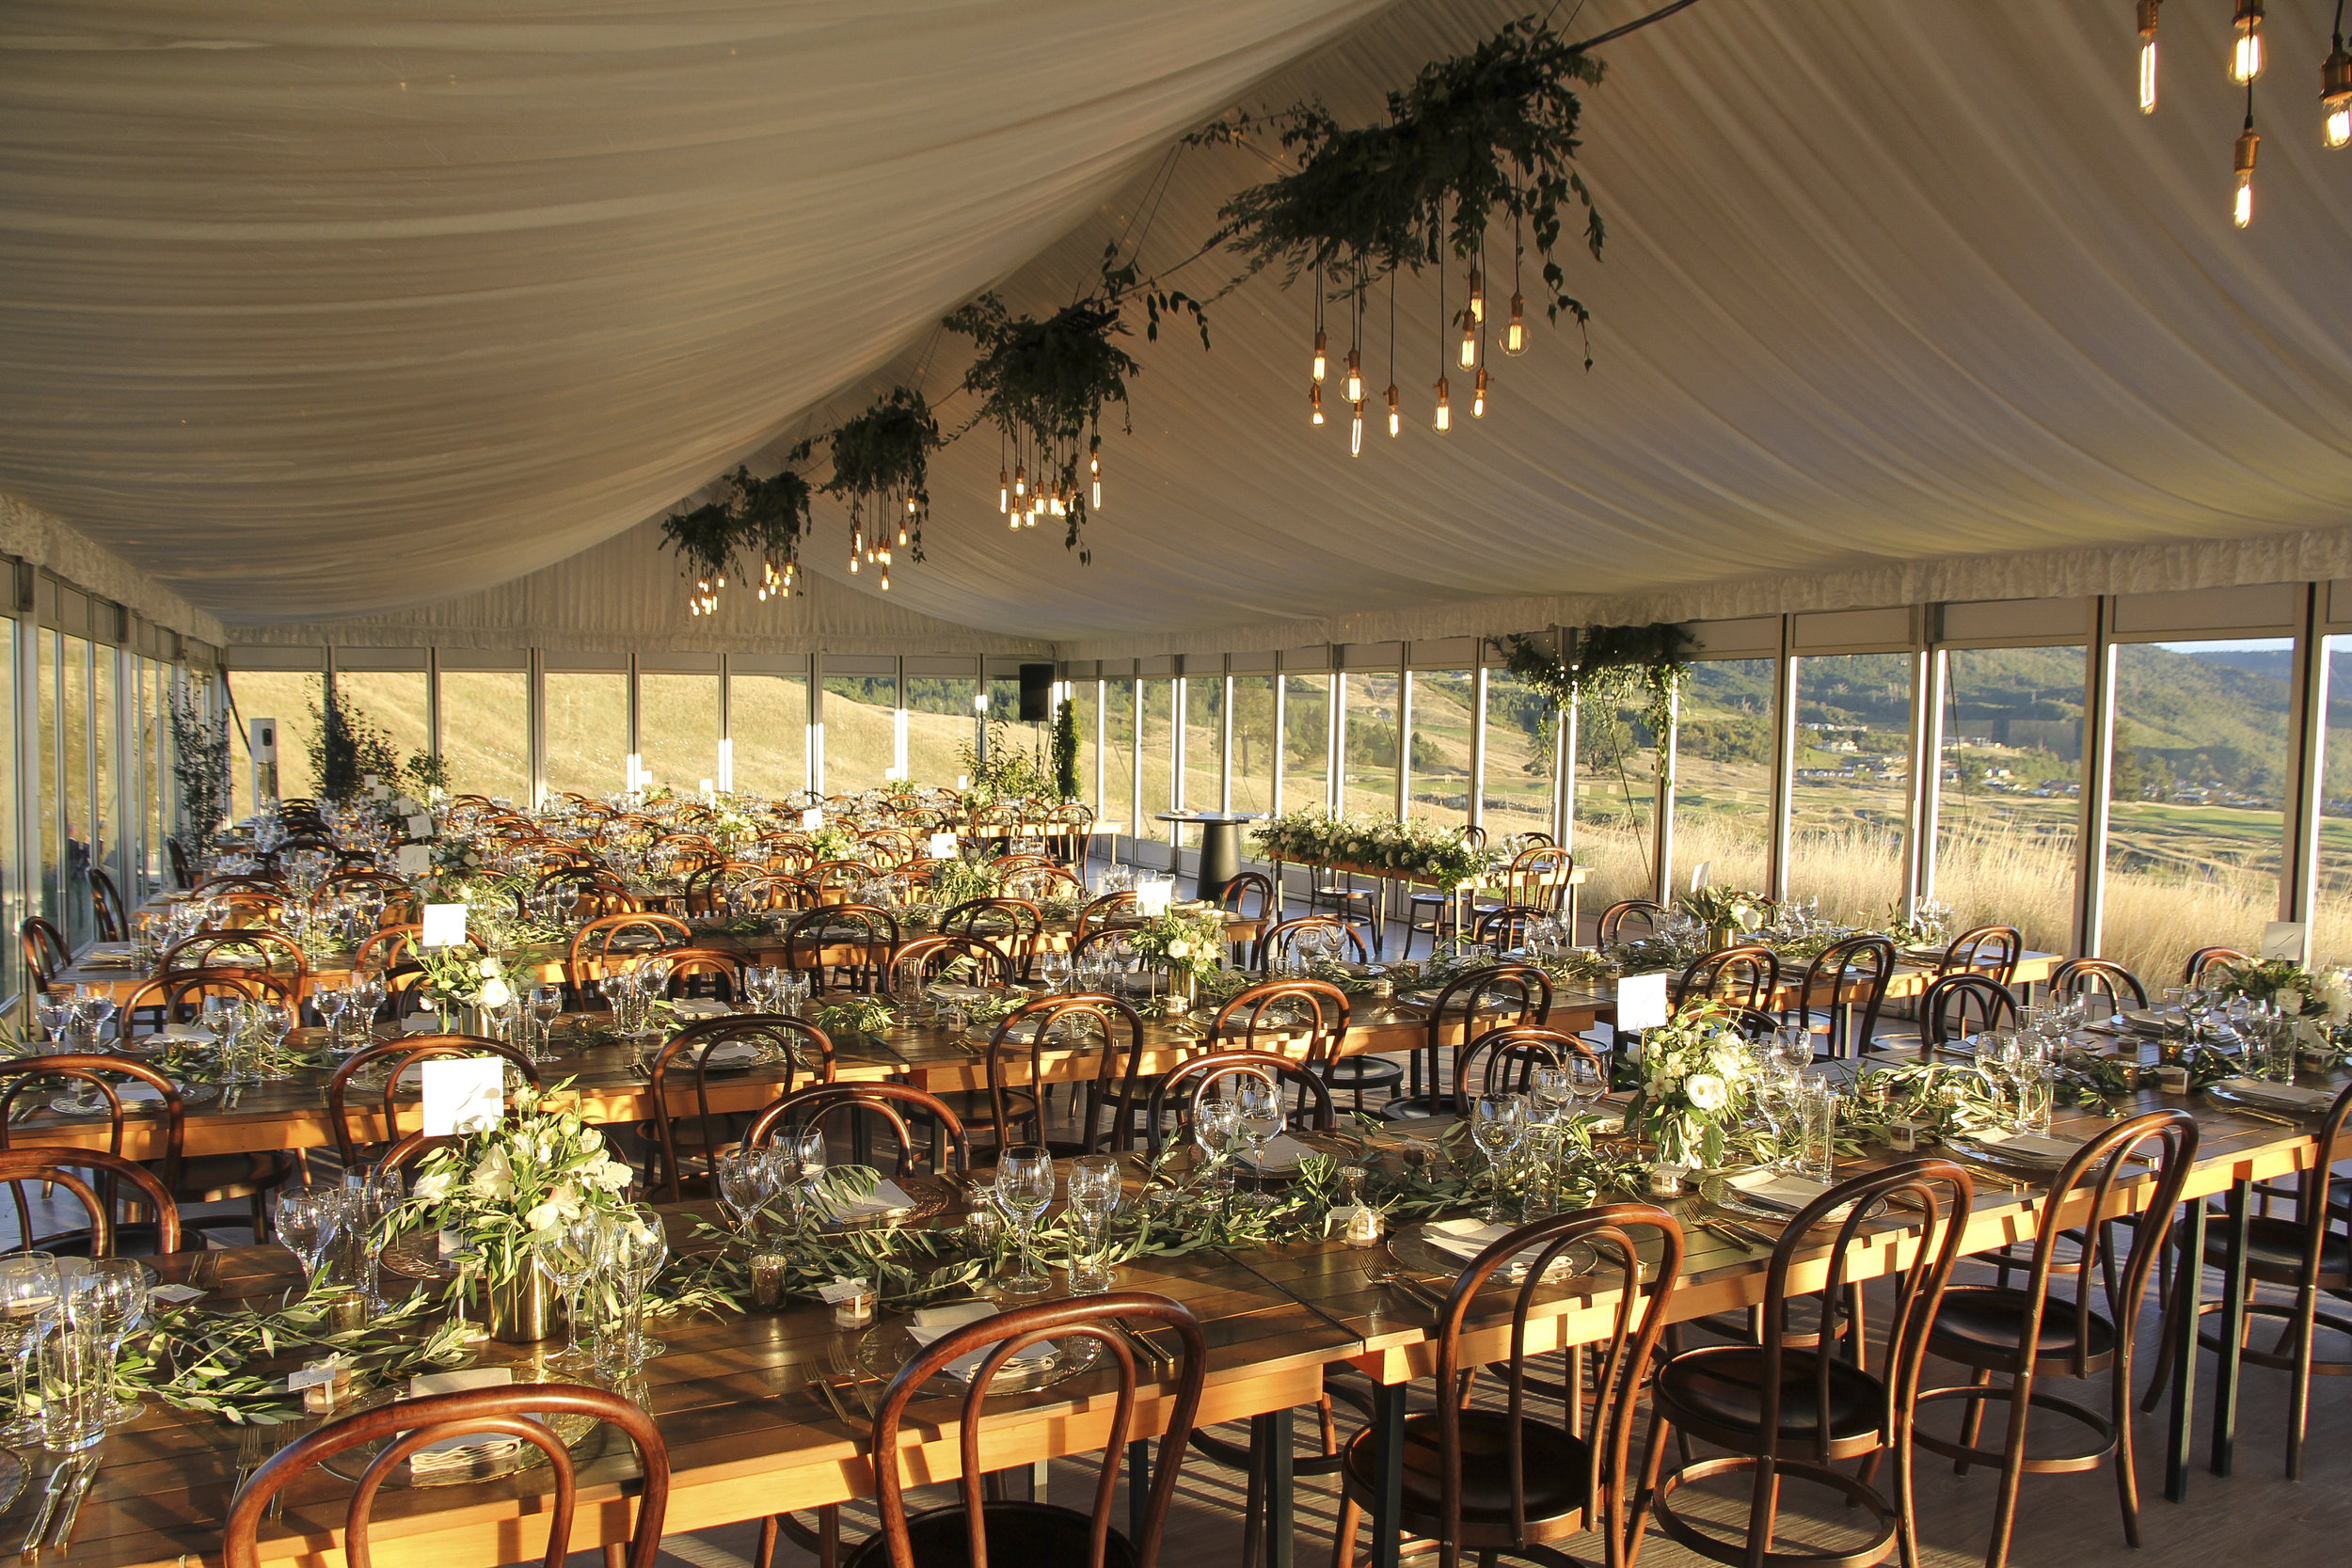 vintage bulb chandeliers with greenery